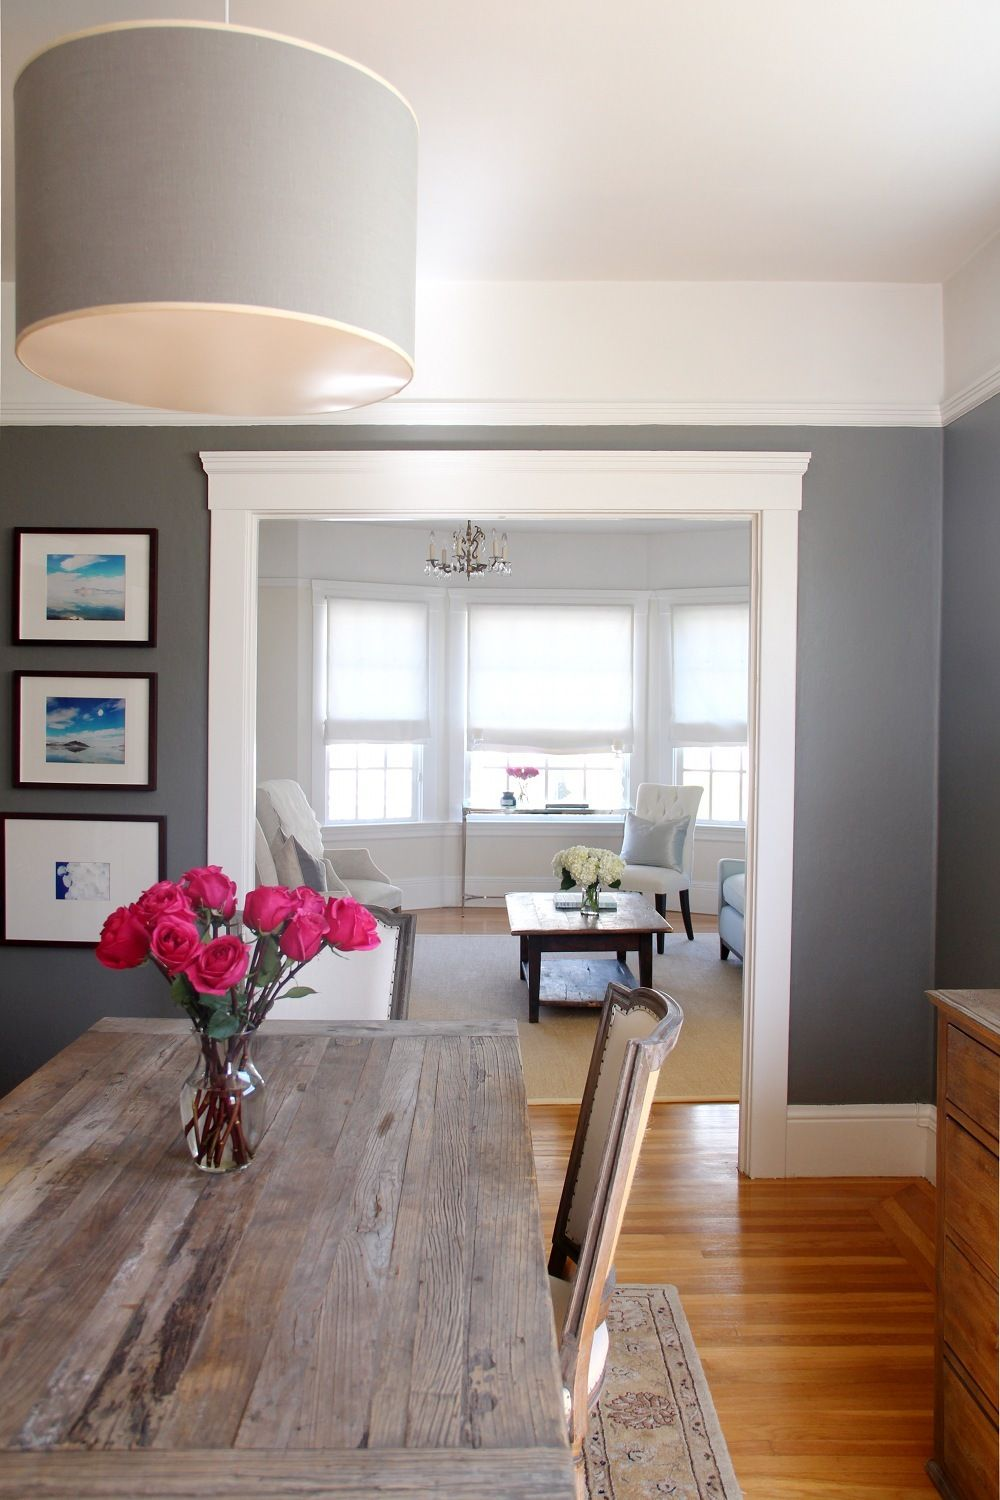 Leading into ecru kitchen walls their sitting room what would be our kitchen with same bold white trim